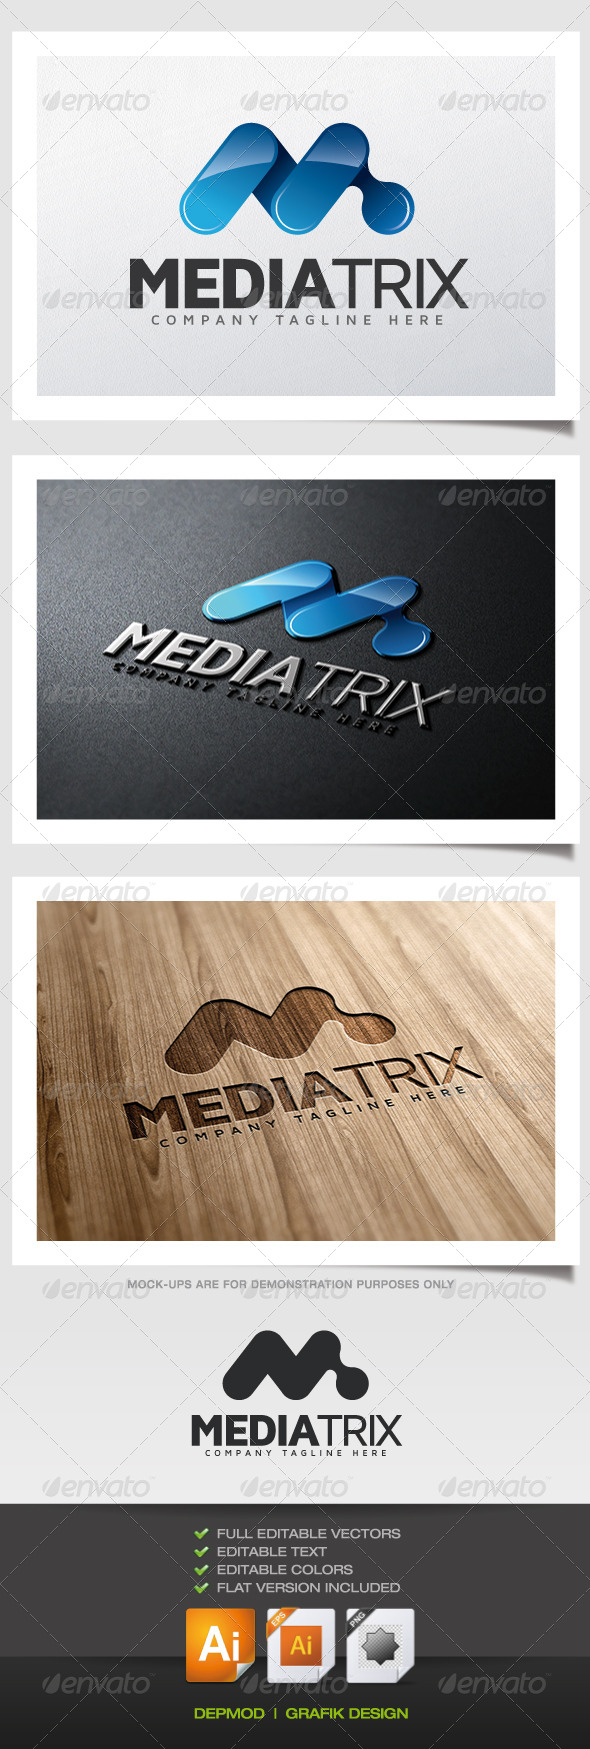 GraphicRiver Mediatrix Logo 5587164